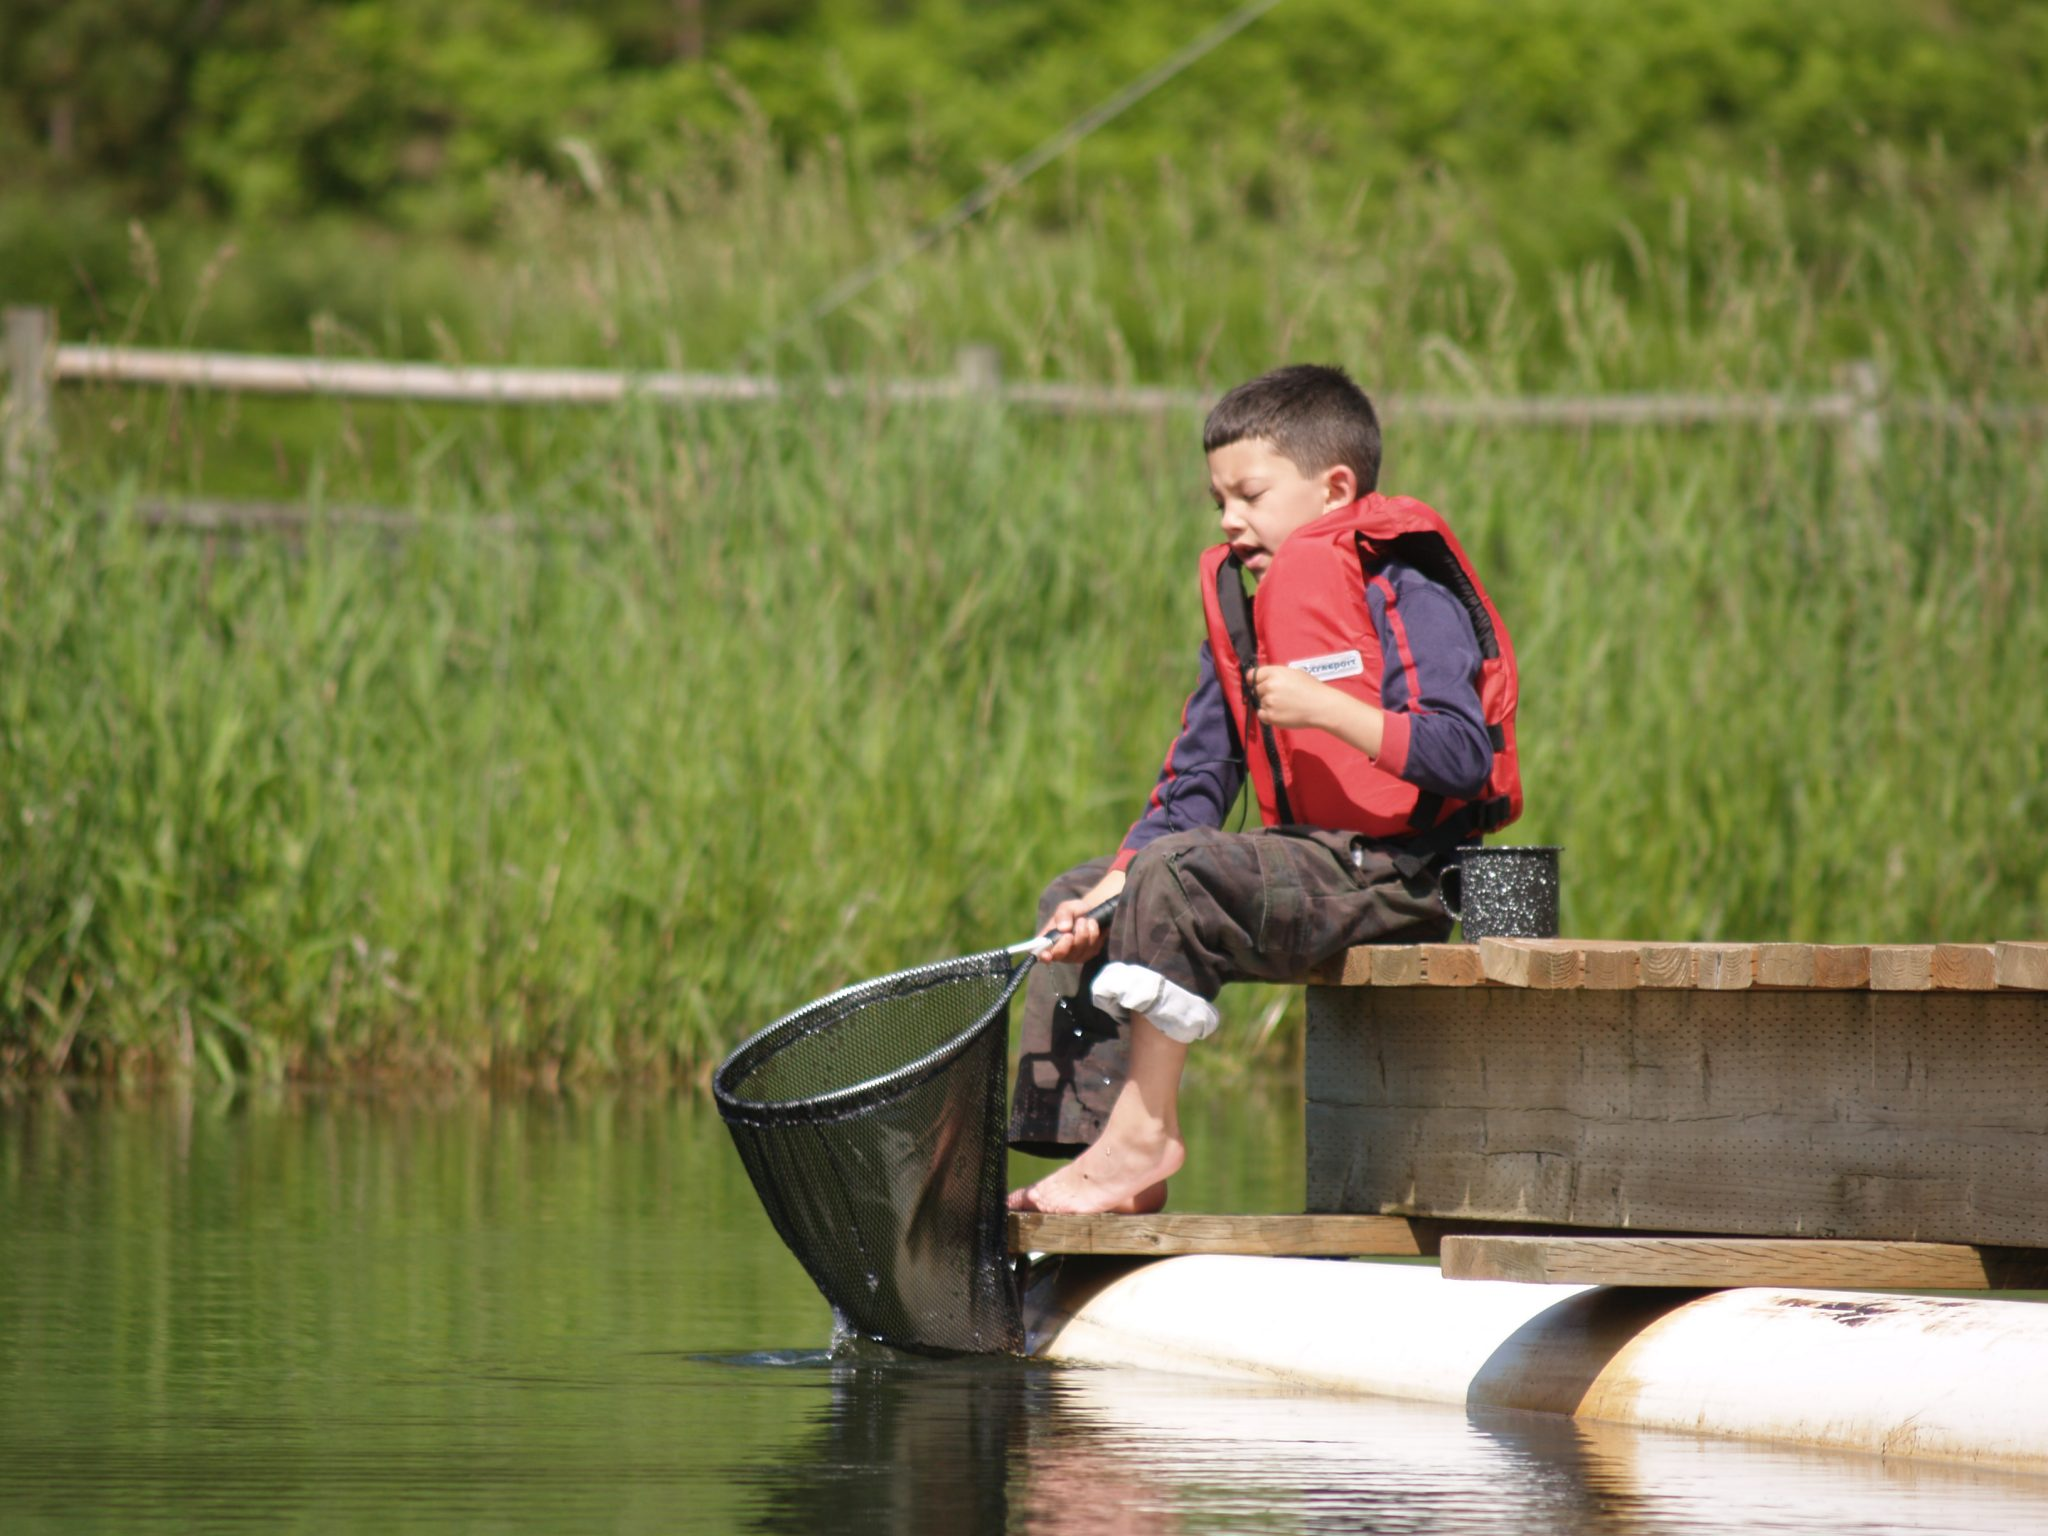 Young boy on dock with a fishing net.